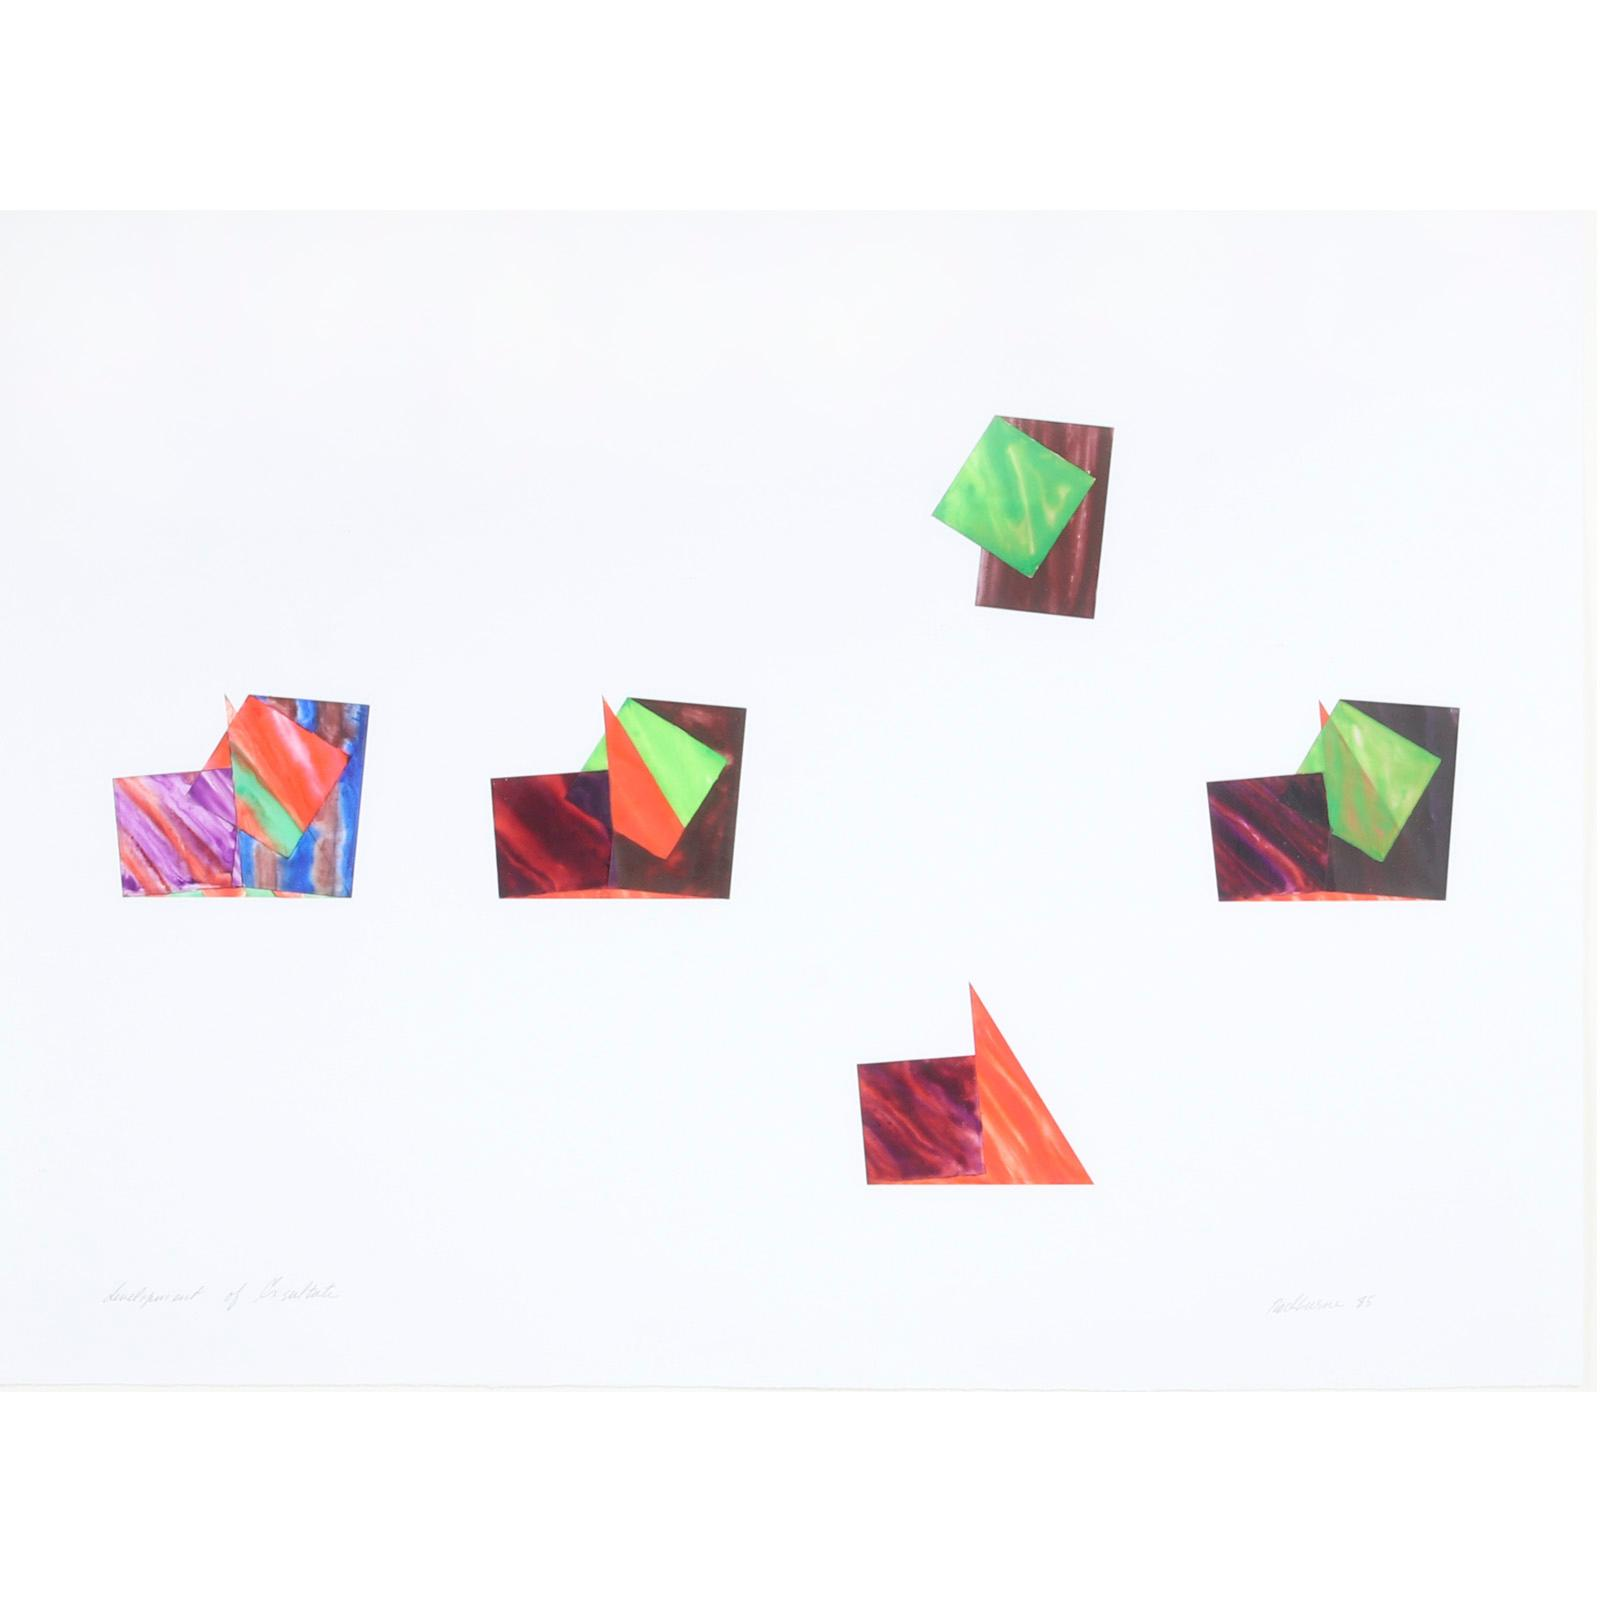 """Dorothea Rockburne, (Canadian, b.1932), Development of Exsultate, 1985, ink and watercolor on prepared acetate, 22""""H x 29""""W ( image) 251/2""""H x 33""""W(frame)"""